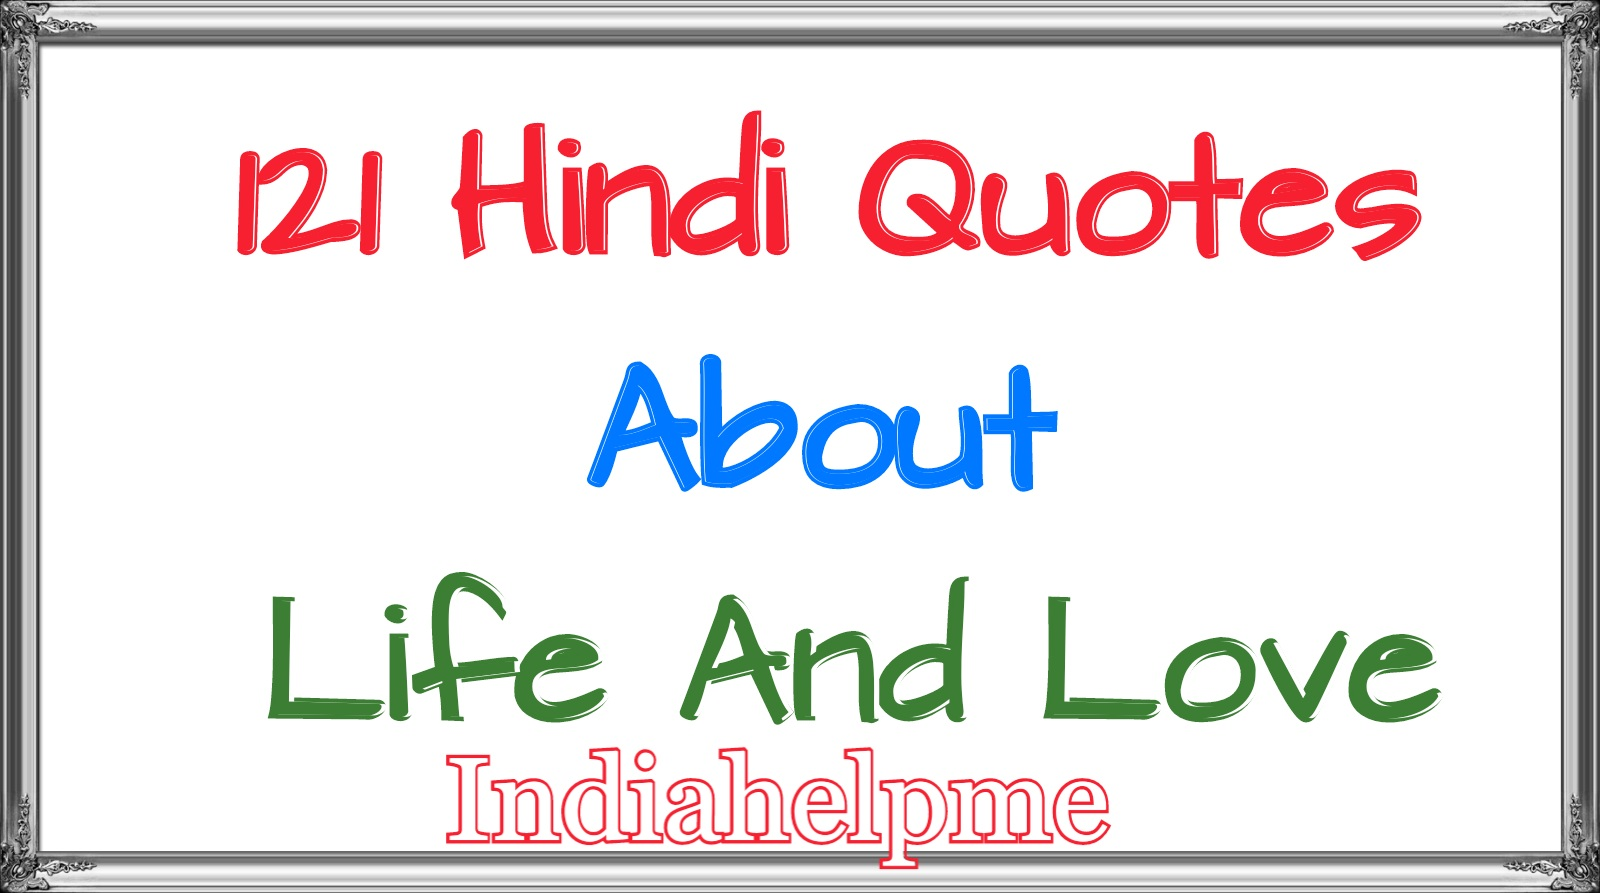 INDIA HELP ME: Hindi Quotes About Life And Love